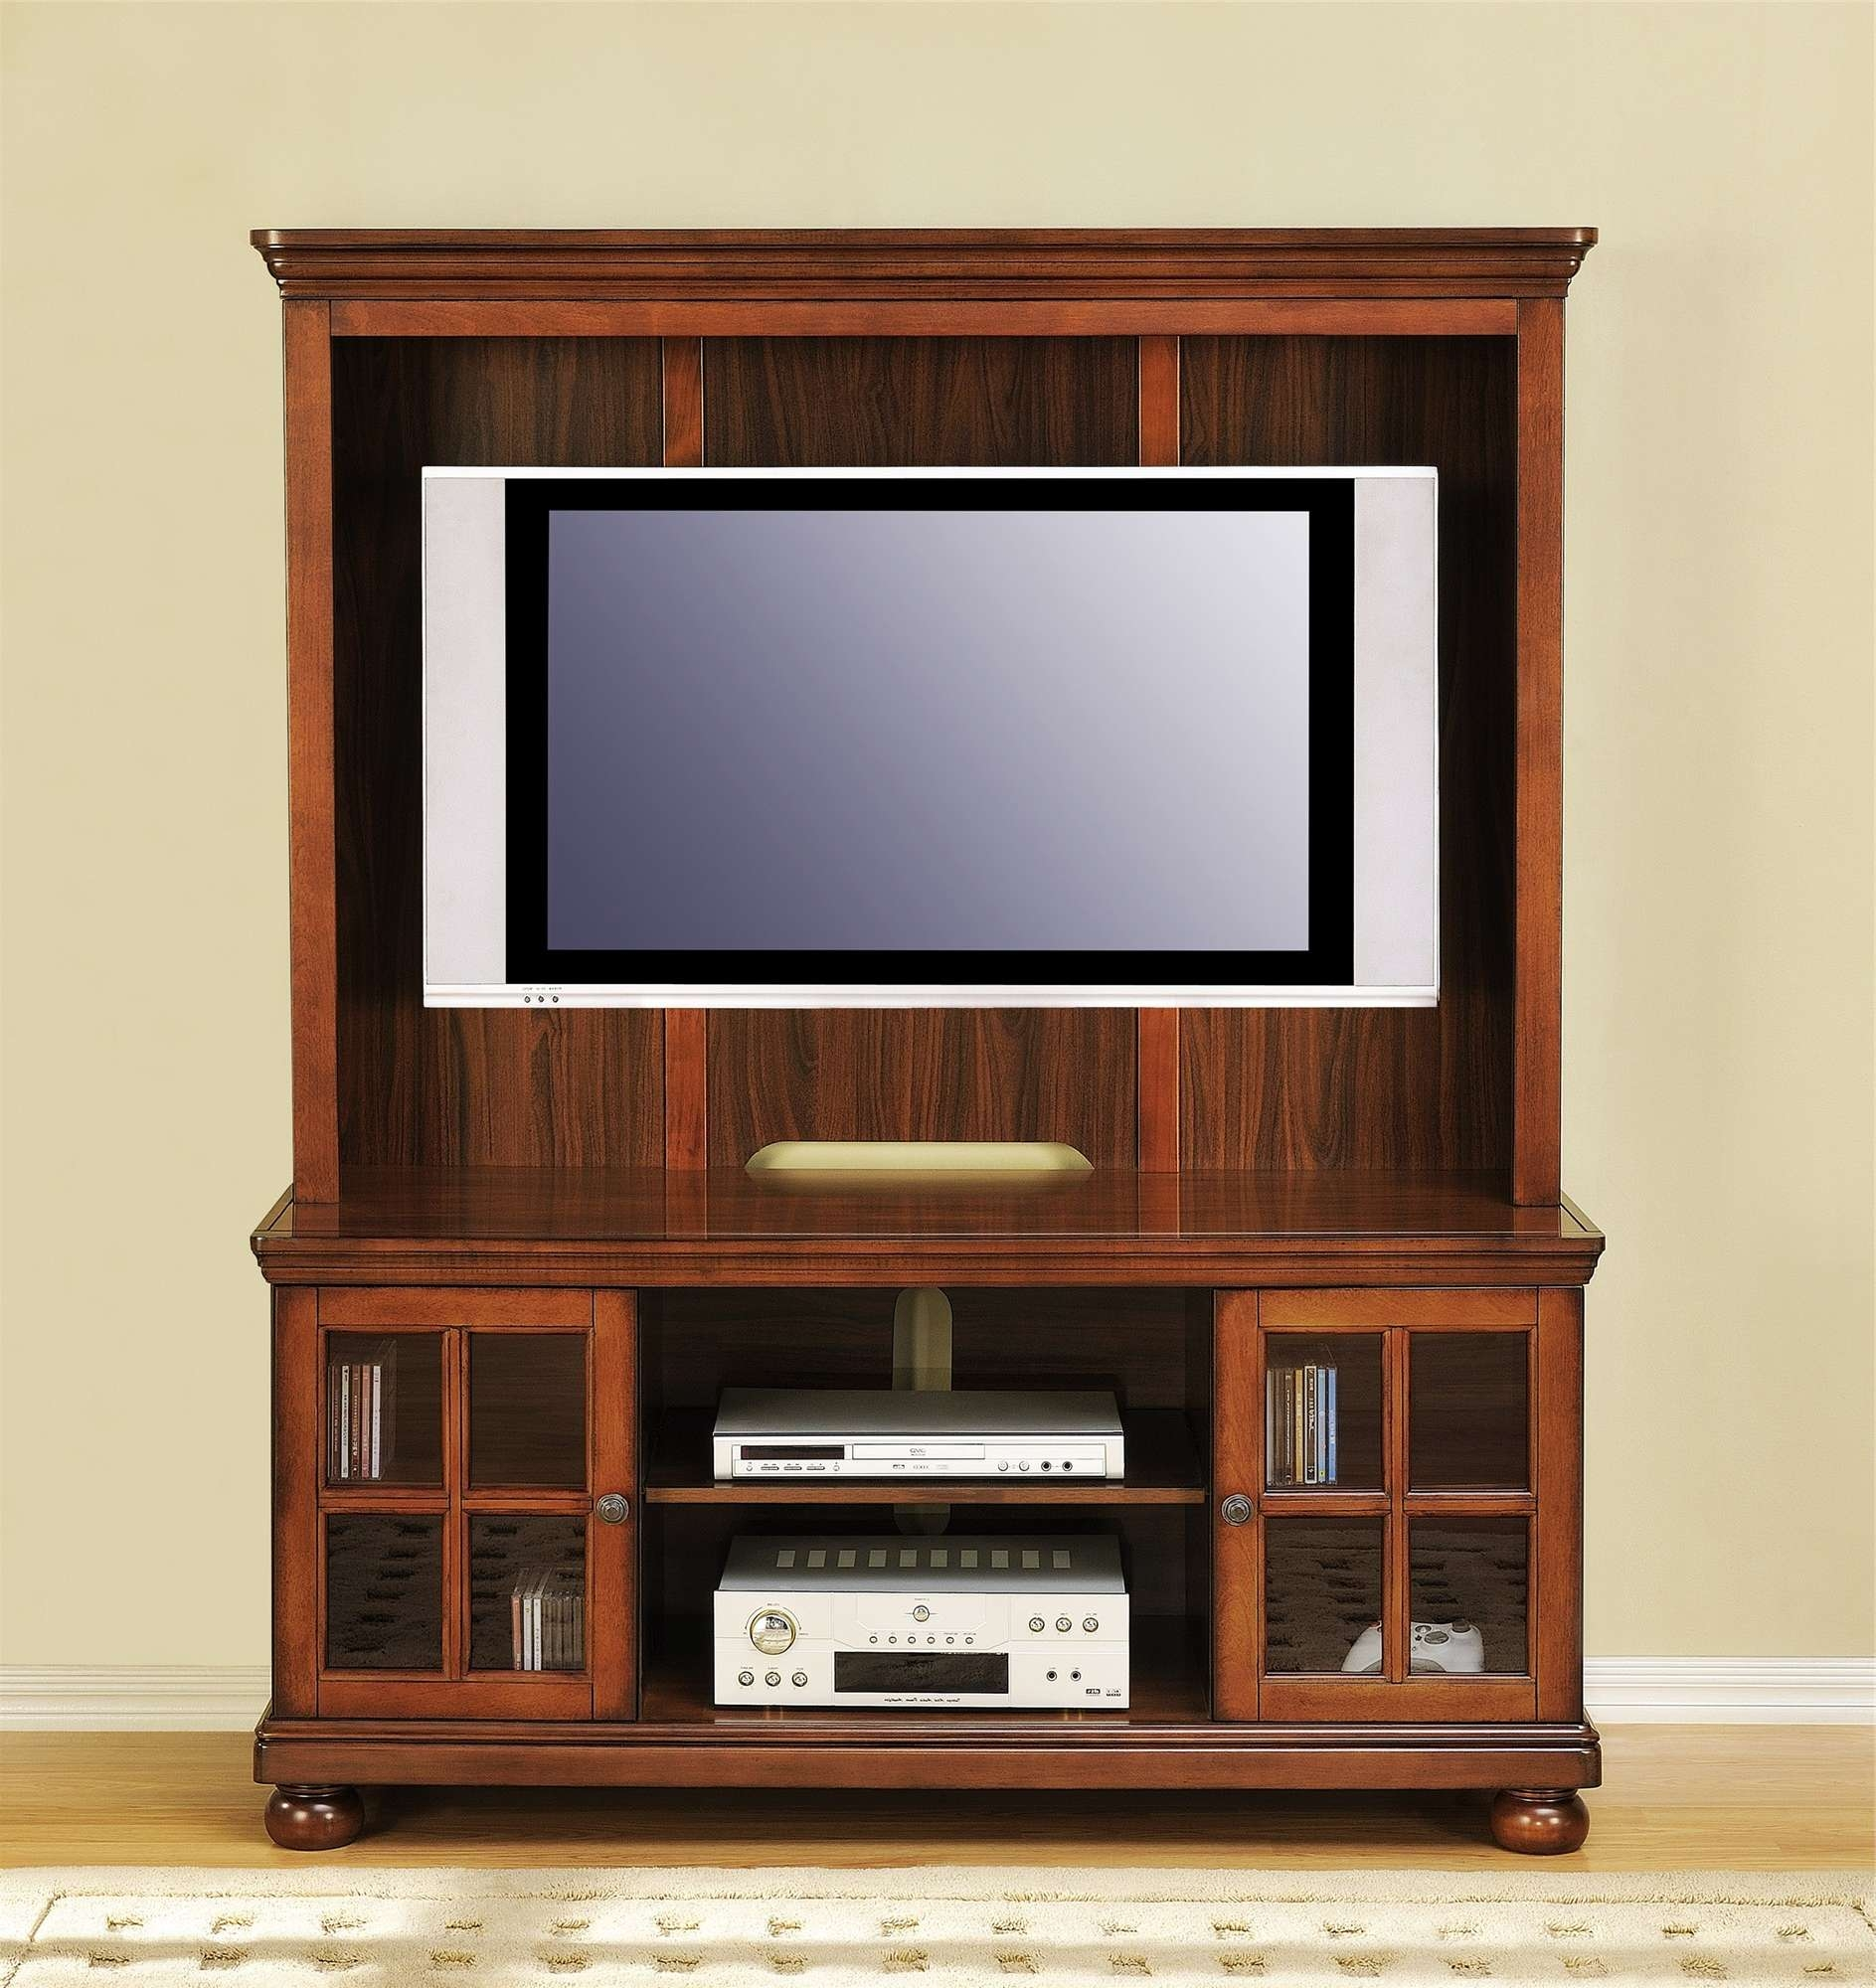 Big Tv Cabinet – Home Design Ideas And Pictures Regarding Wooden Tv Cabinets With Glass Doors (View 18 of 20)